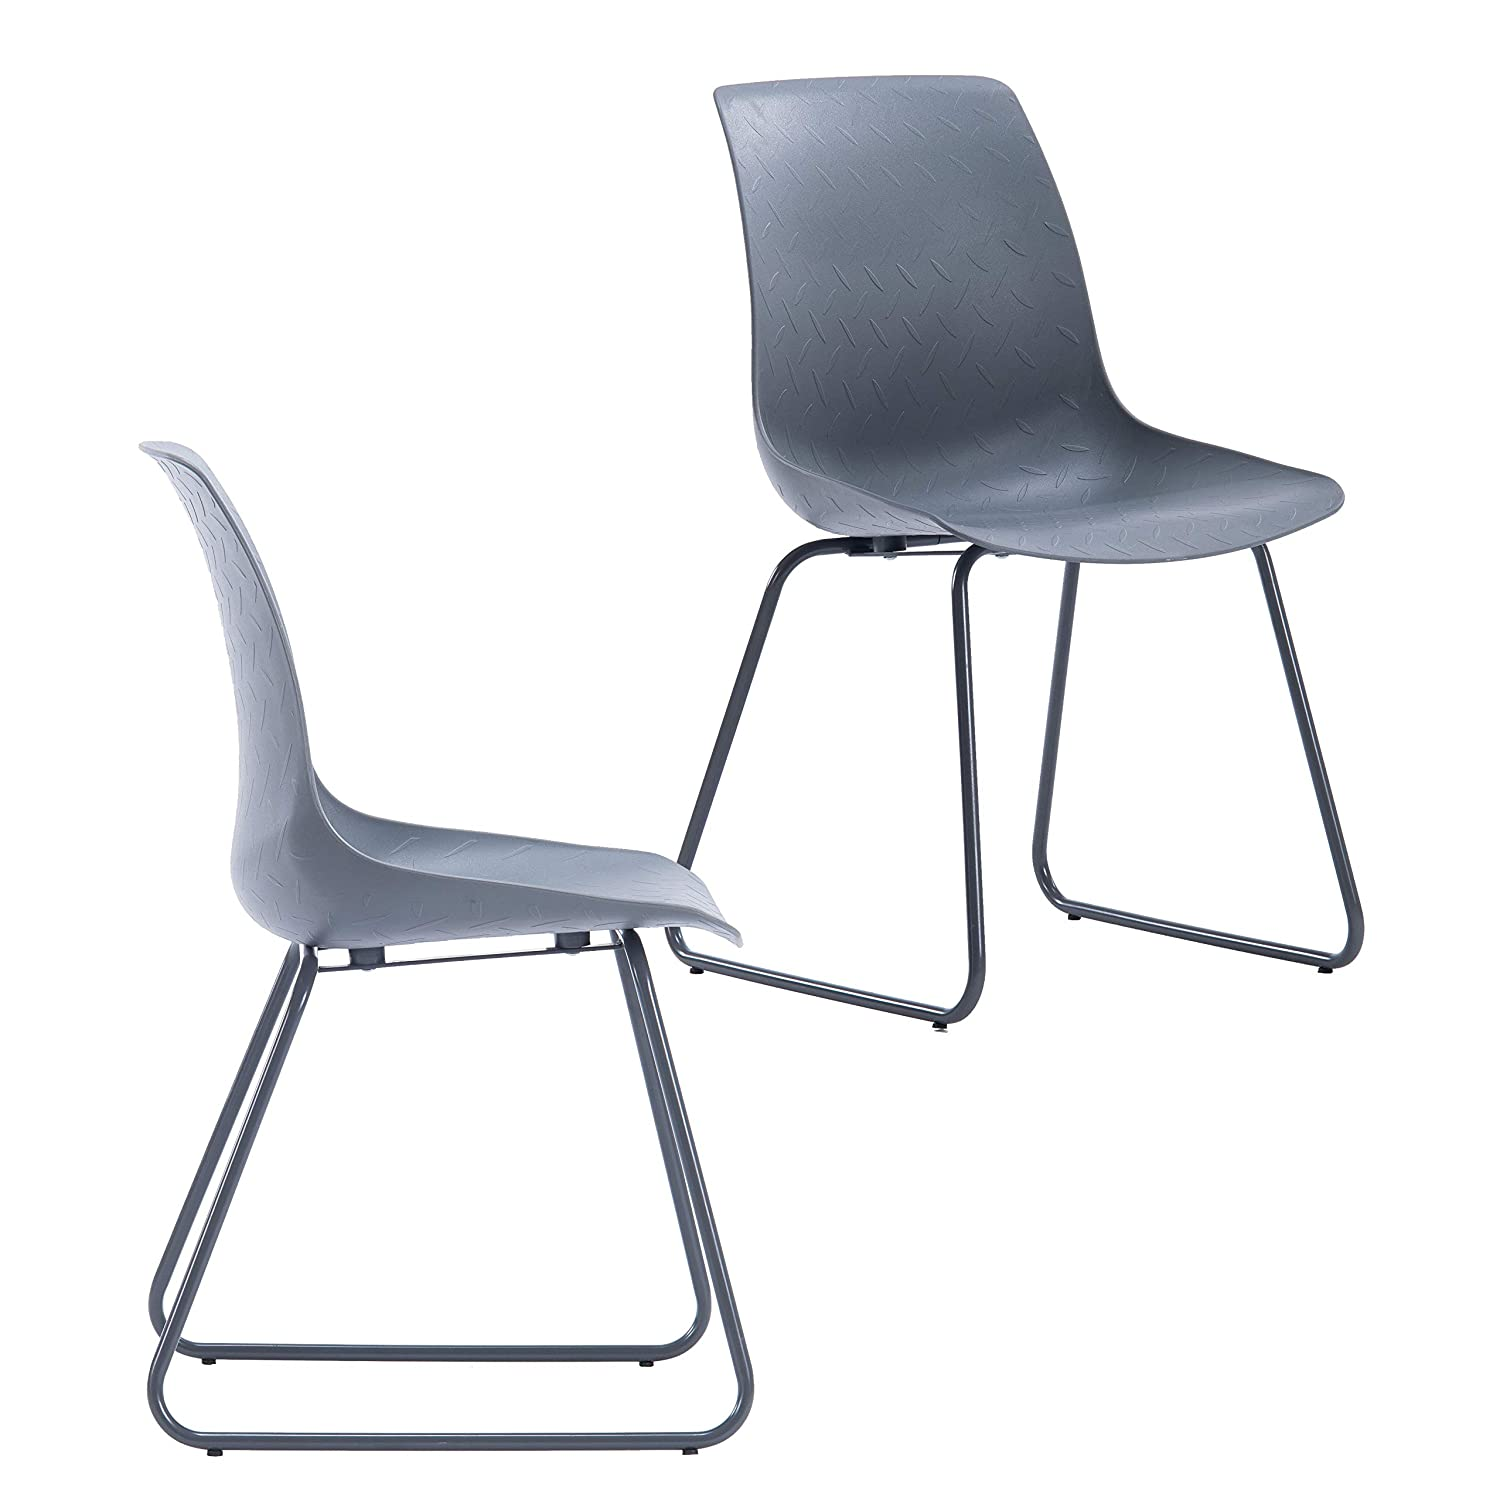 Porthos Home LVC004A Gry Modern Dining, Side or Desk Chair with Painted Finish Metal Sled Base, Easy Assembly, Monochromatic White or Gray,Set of 2 One Size Grey